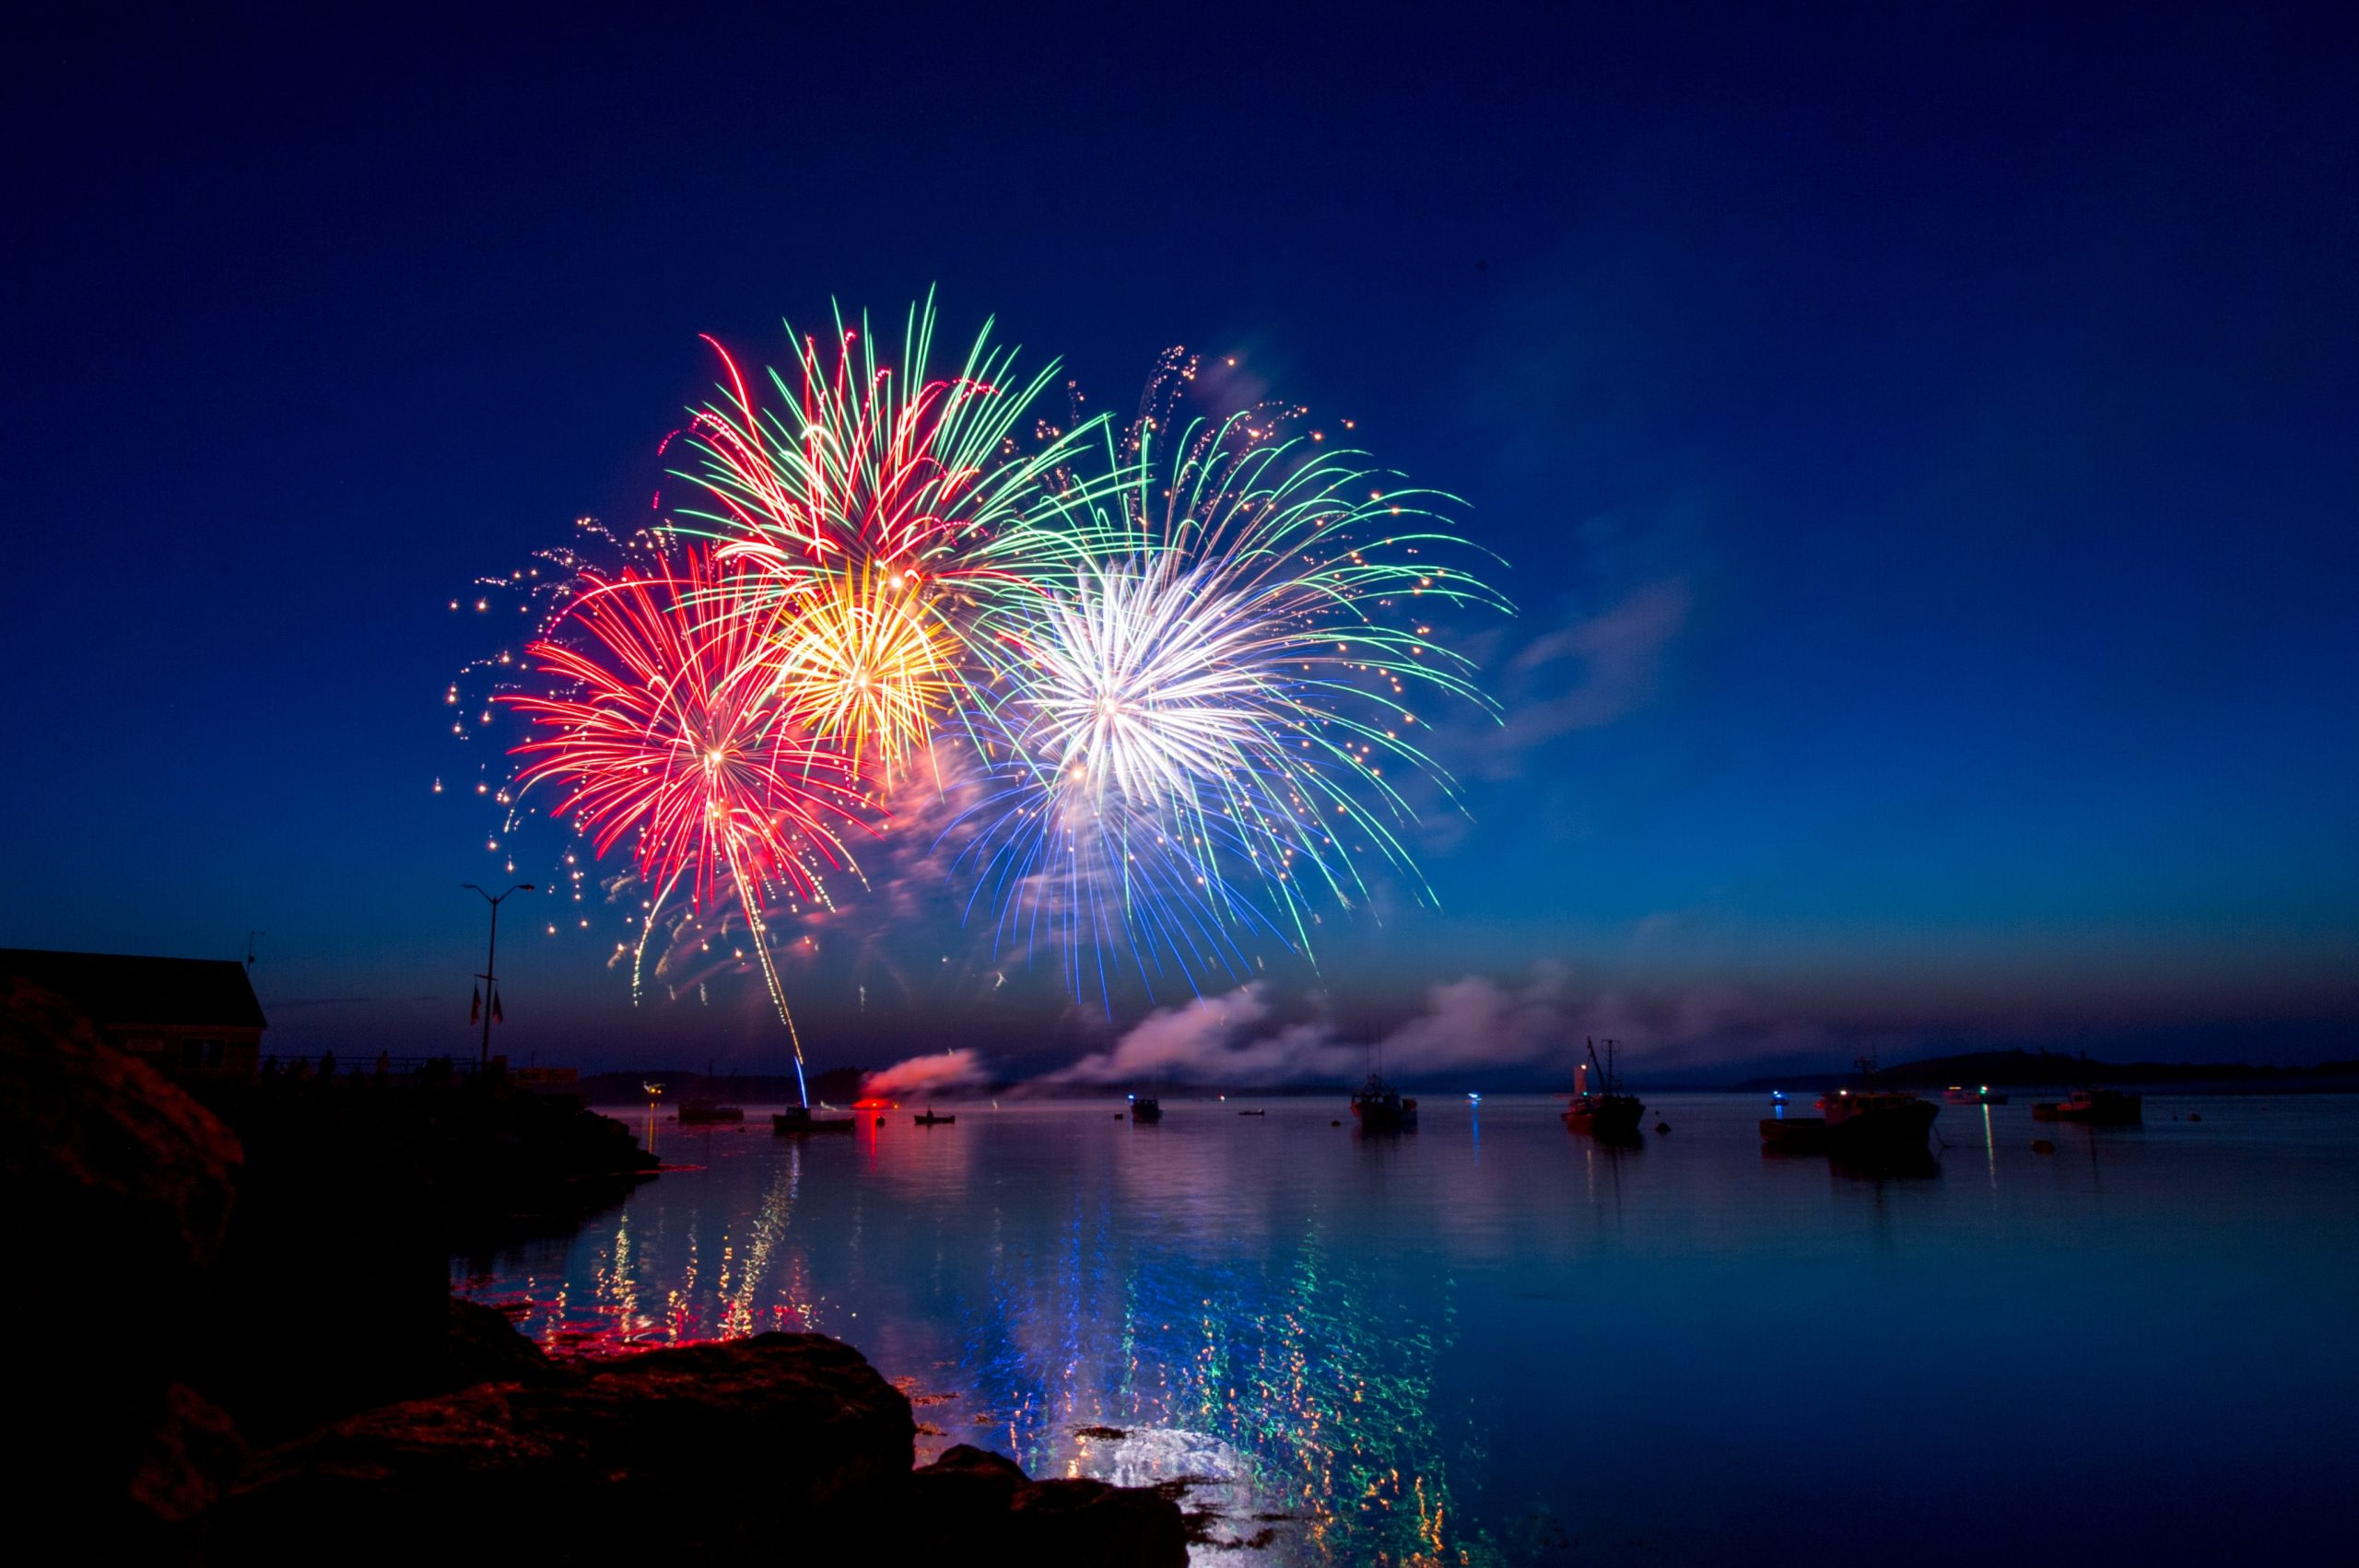 New Year's Resolutions in a time of uncertainty. Picture of fireworks over water, by Ray Hennessy on Unsplash